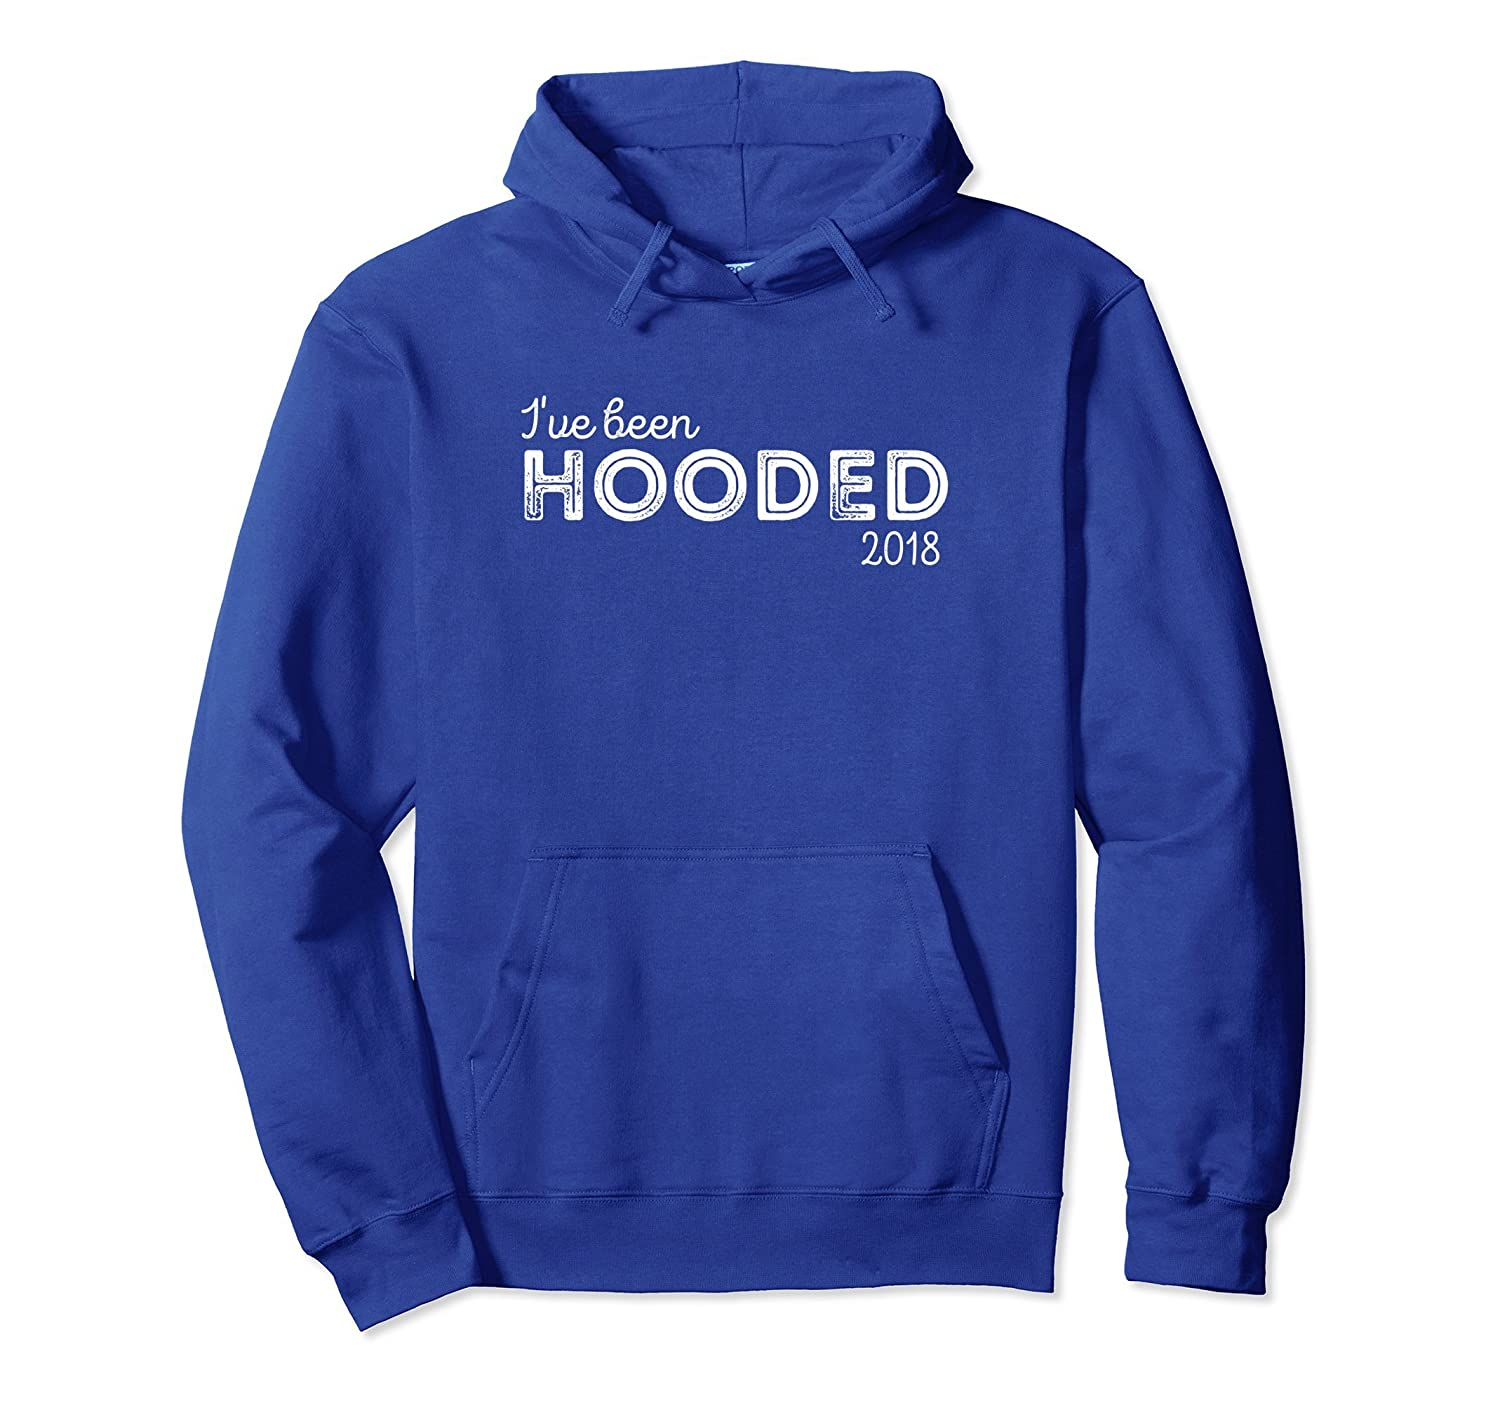 2018 Masters Degree Graduation Hoodie Gift for Graduate-alottee gift